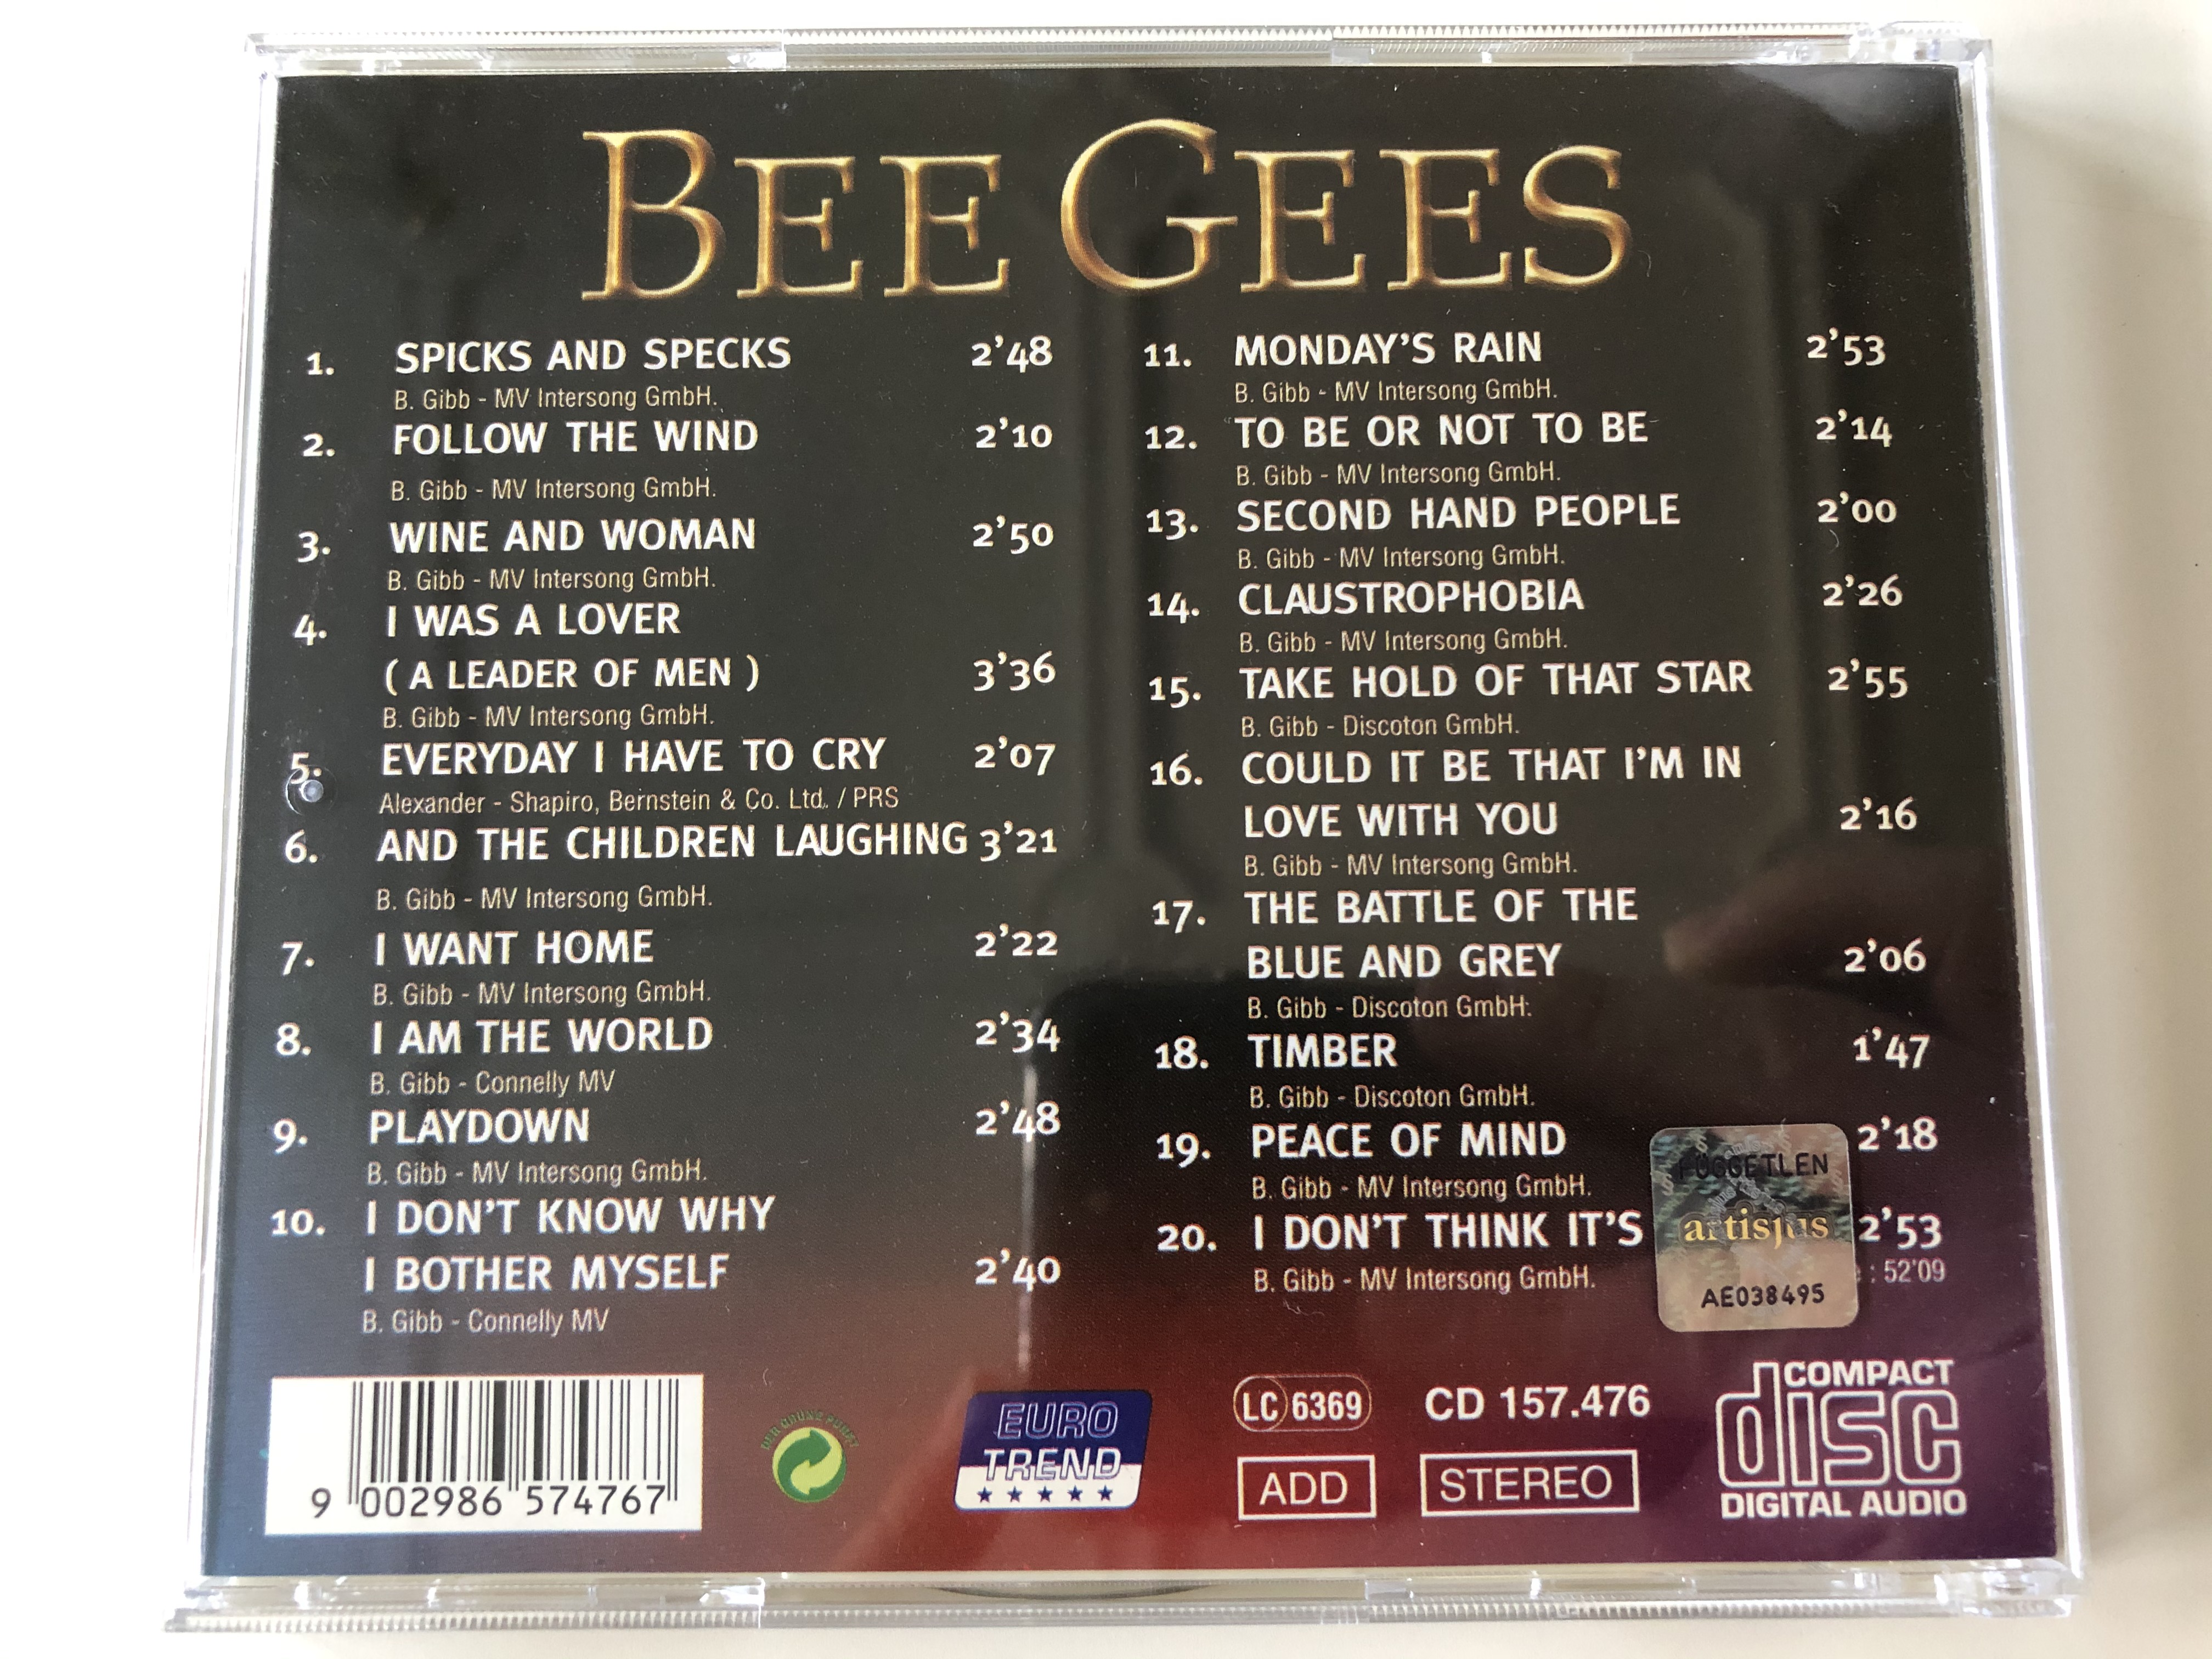 bee-gees-spicks-and-specks-follow-the-wind-peace-of-mind-take-hold-of-that-star-and-many-others-eurotrend-audio-cd-cd-157-3-.jpg